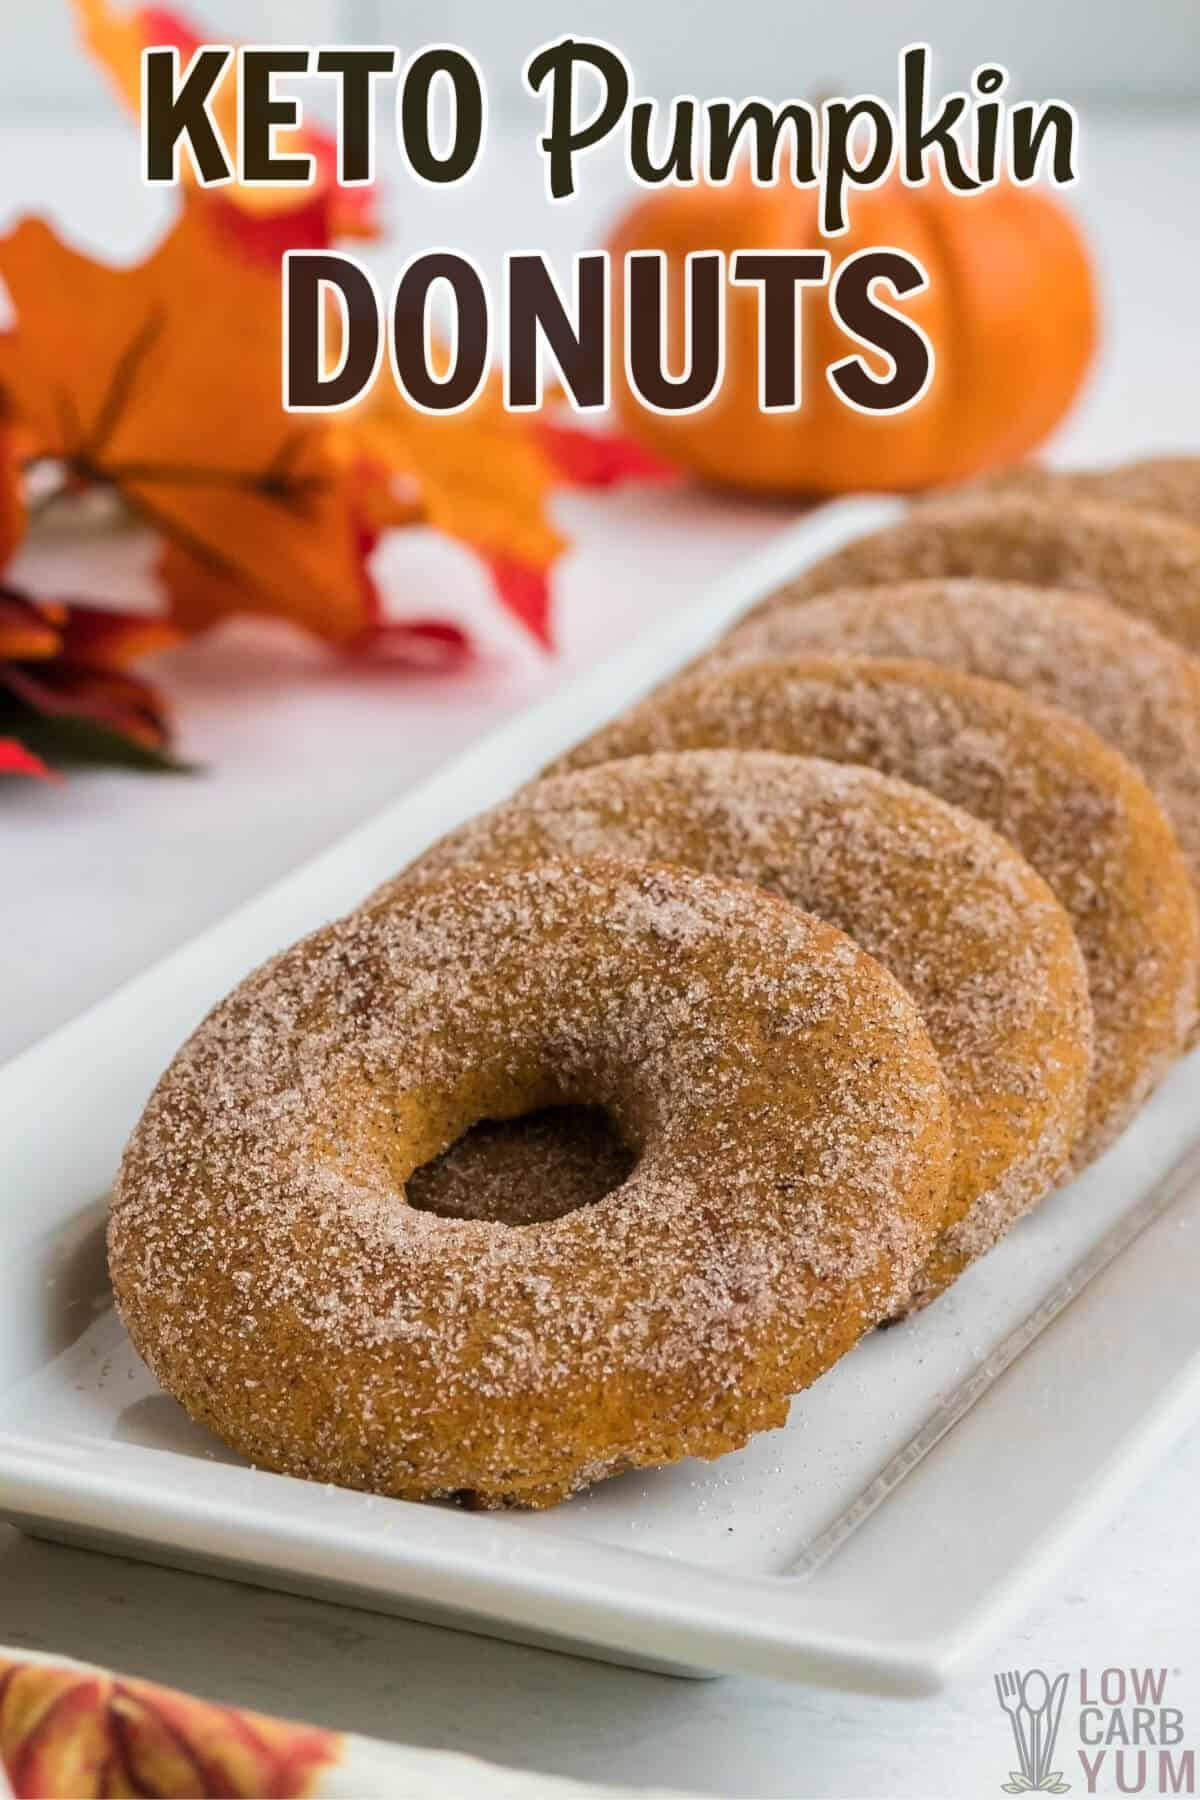 keto pumpkin donuts on rectangular white plate